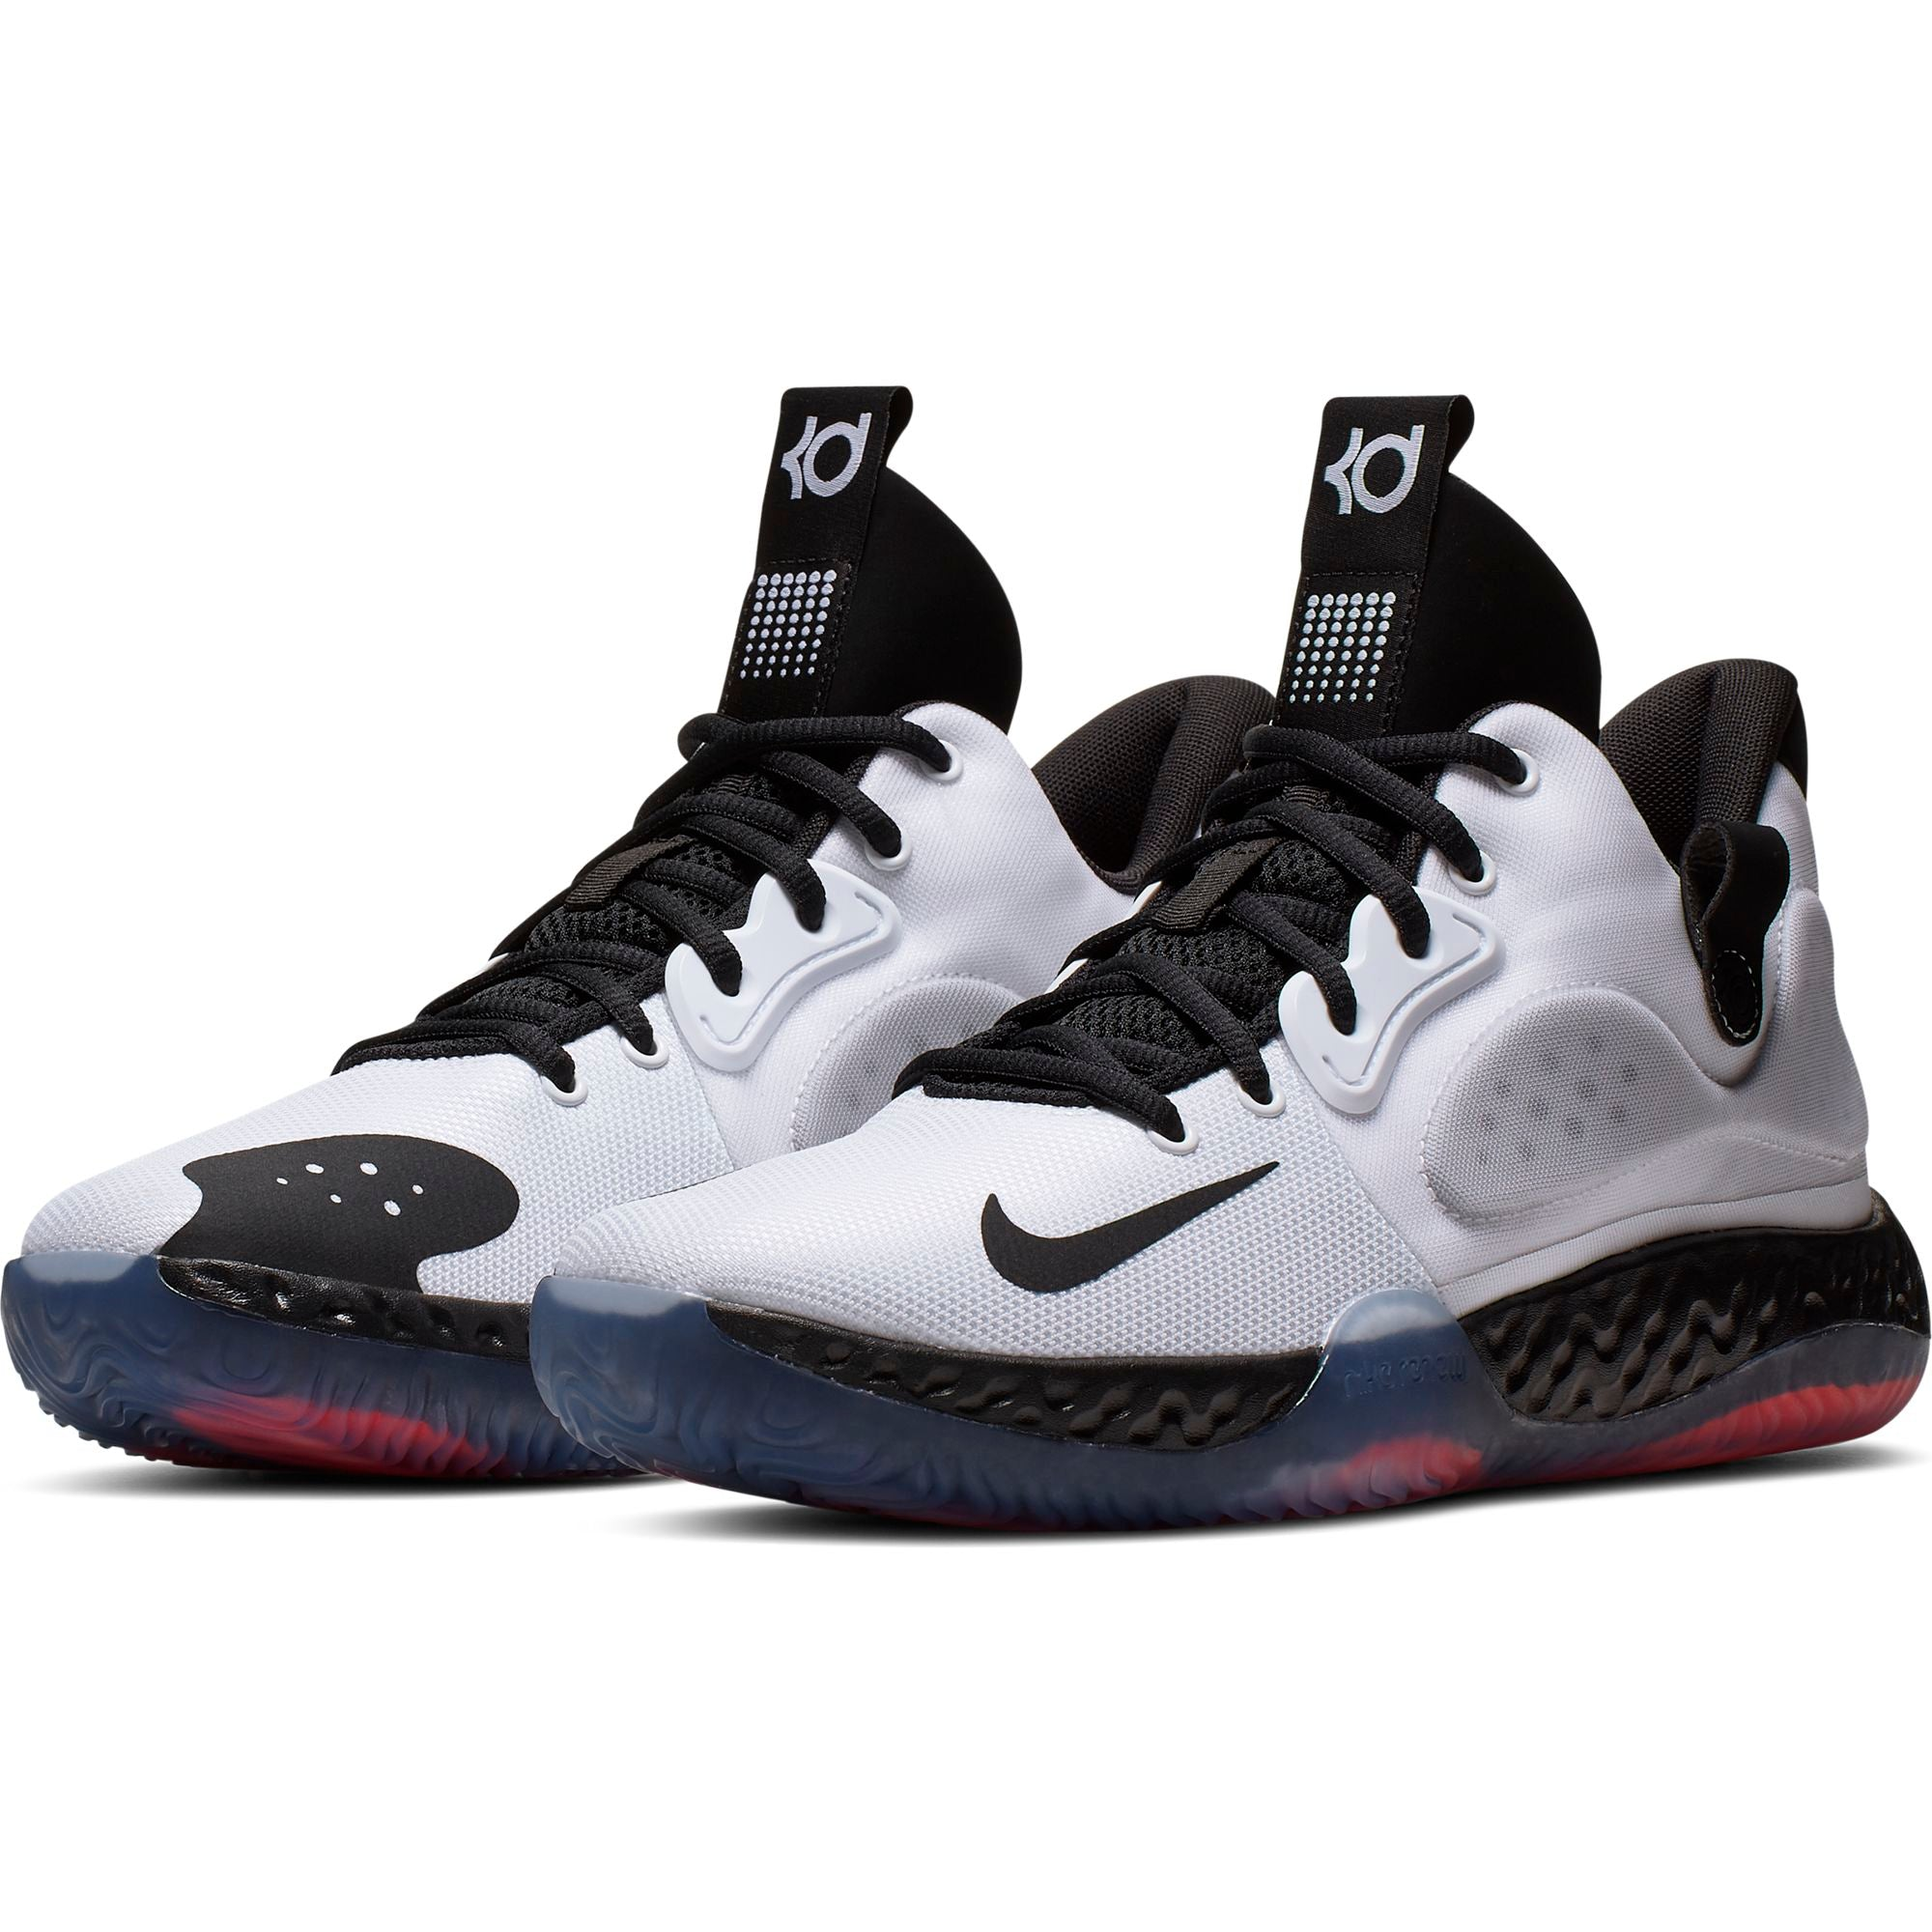 Nike KD Trey 5 VII Basketball Shoe - White/Black/Wolf Grey/Bright Crimson